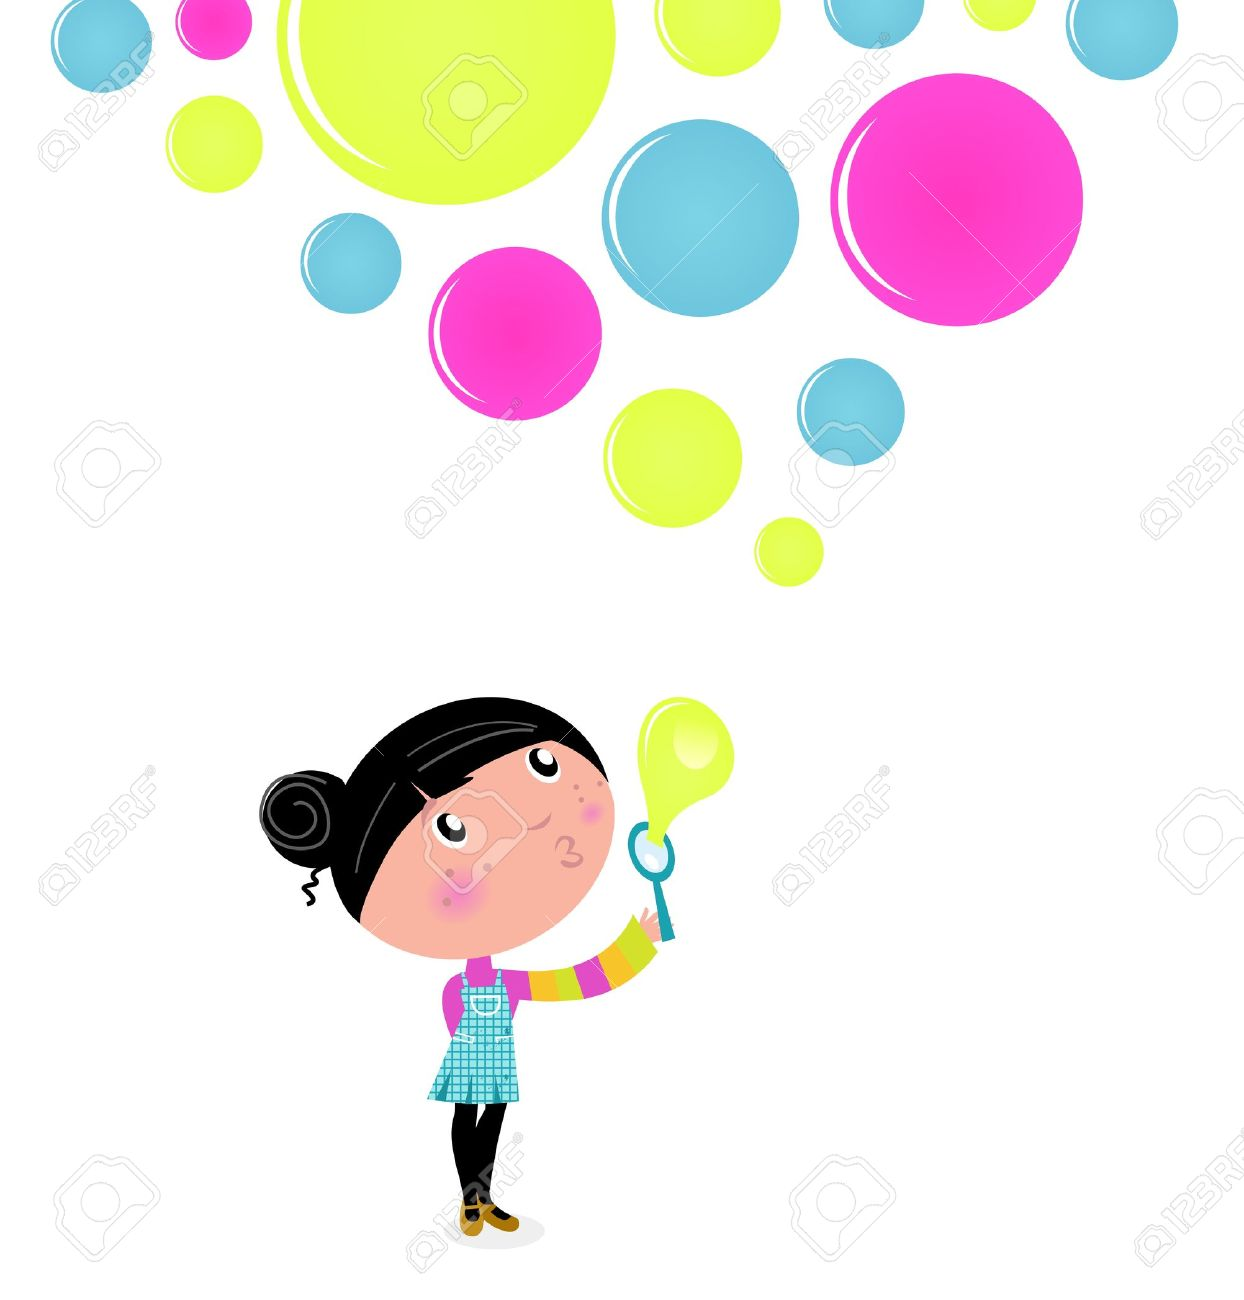 Little Girl blowing Soap bubbles. Vector Illustration. Stock Vector - 10618047